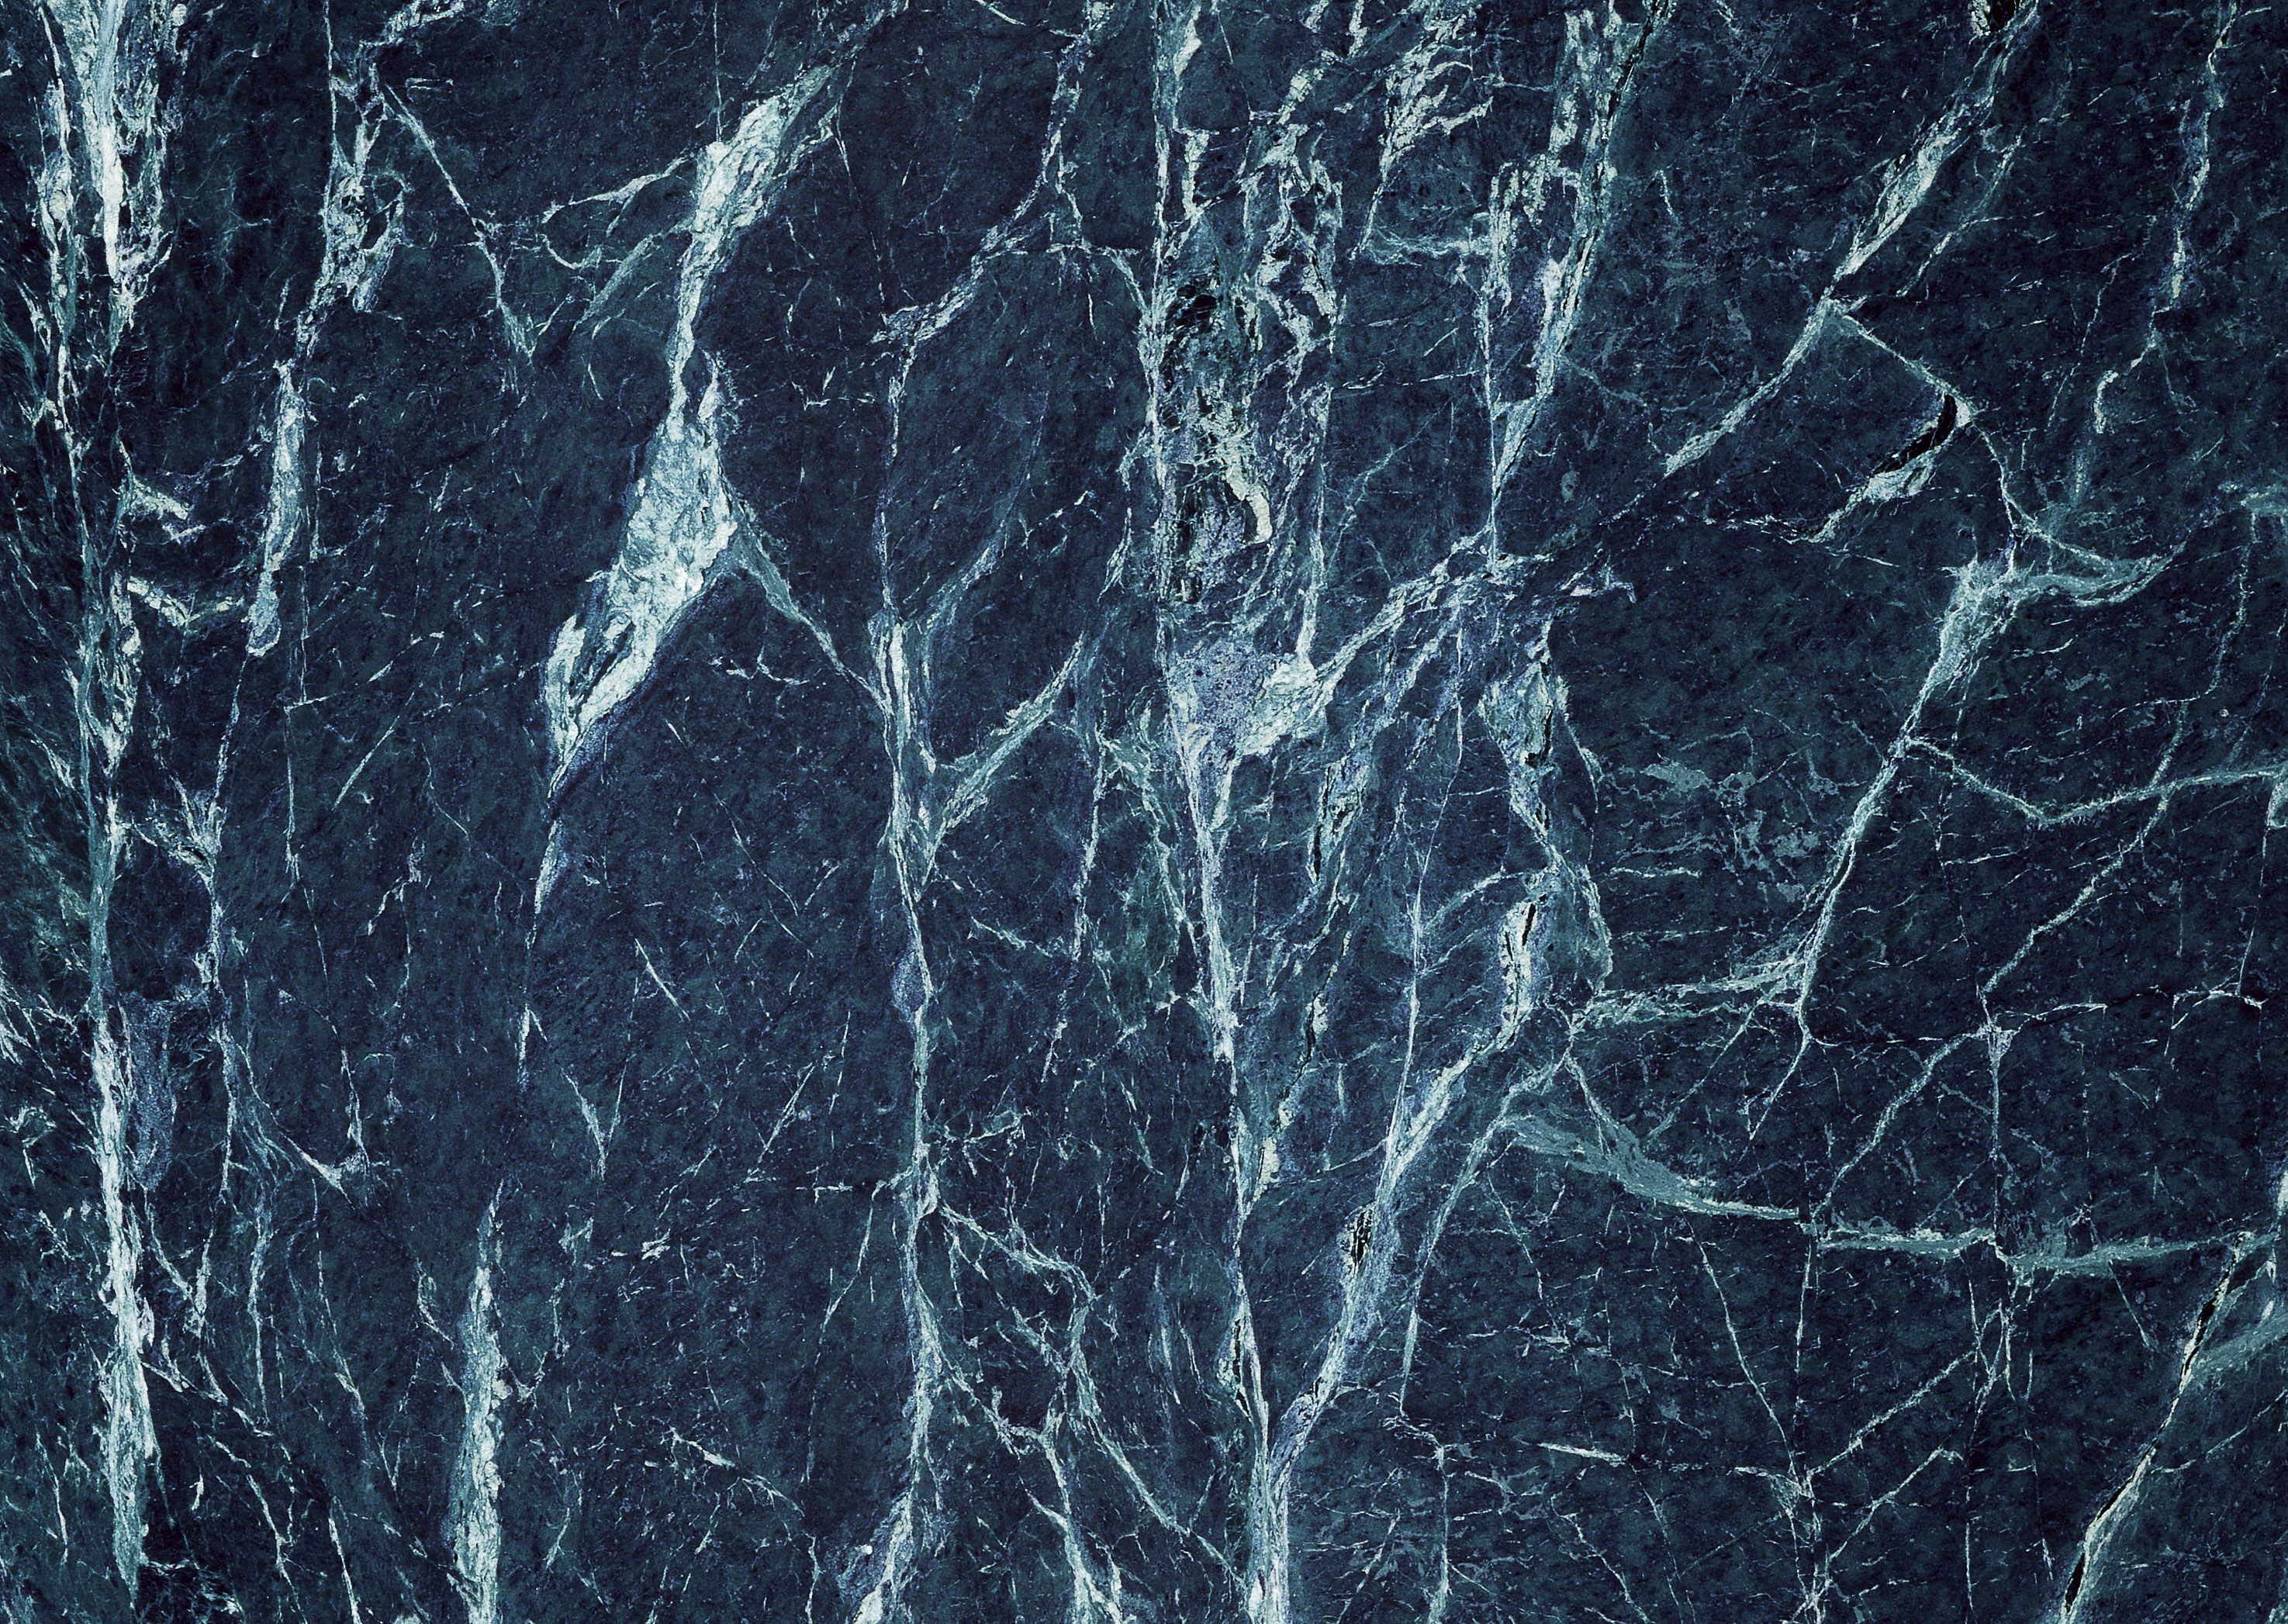 blue marble | Hotel Interior Design | Pinterest | Marbles and Interiors